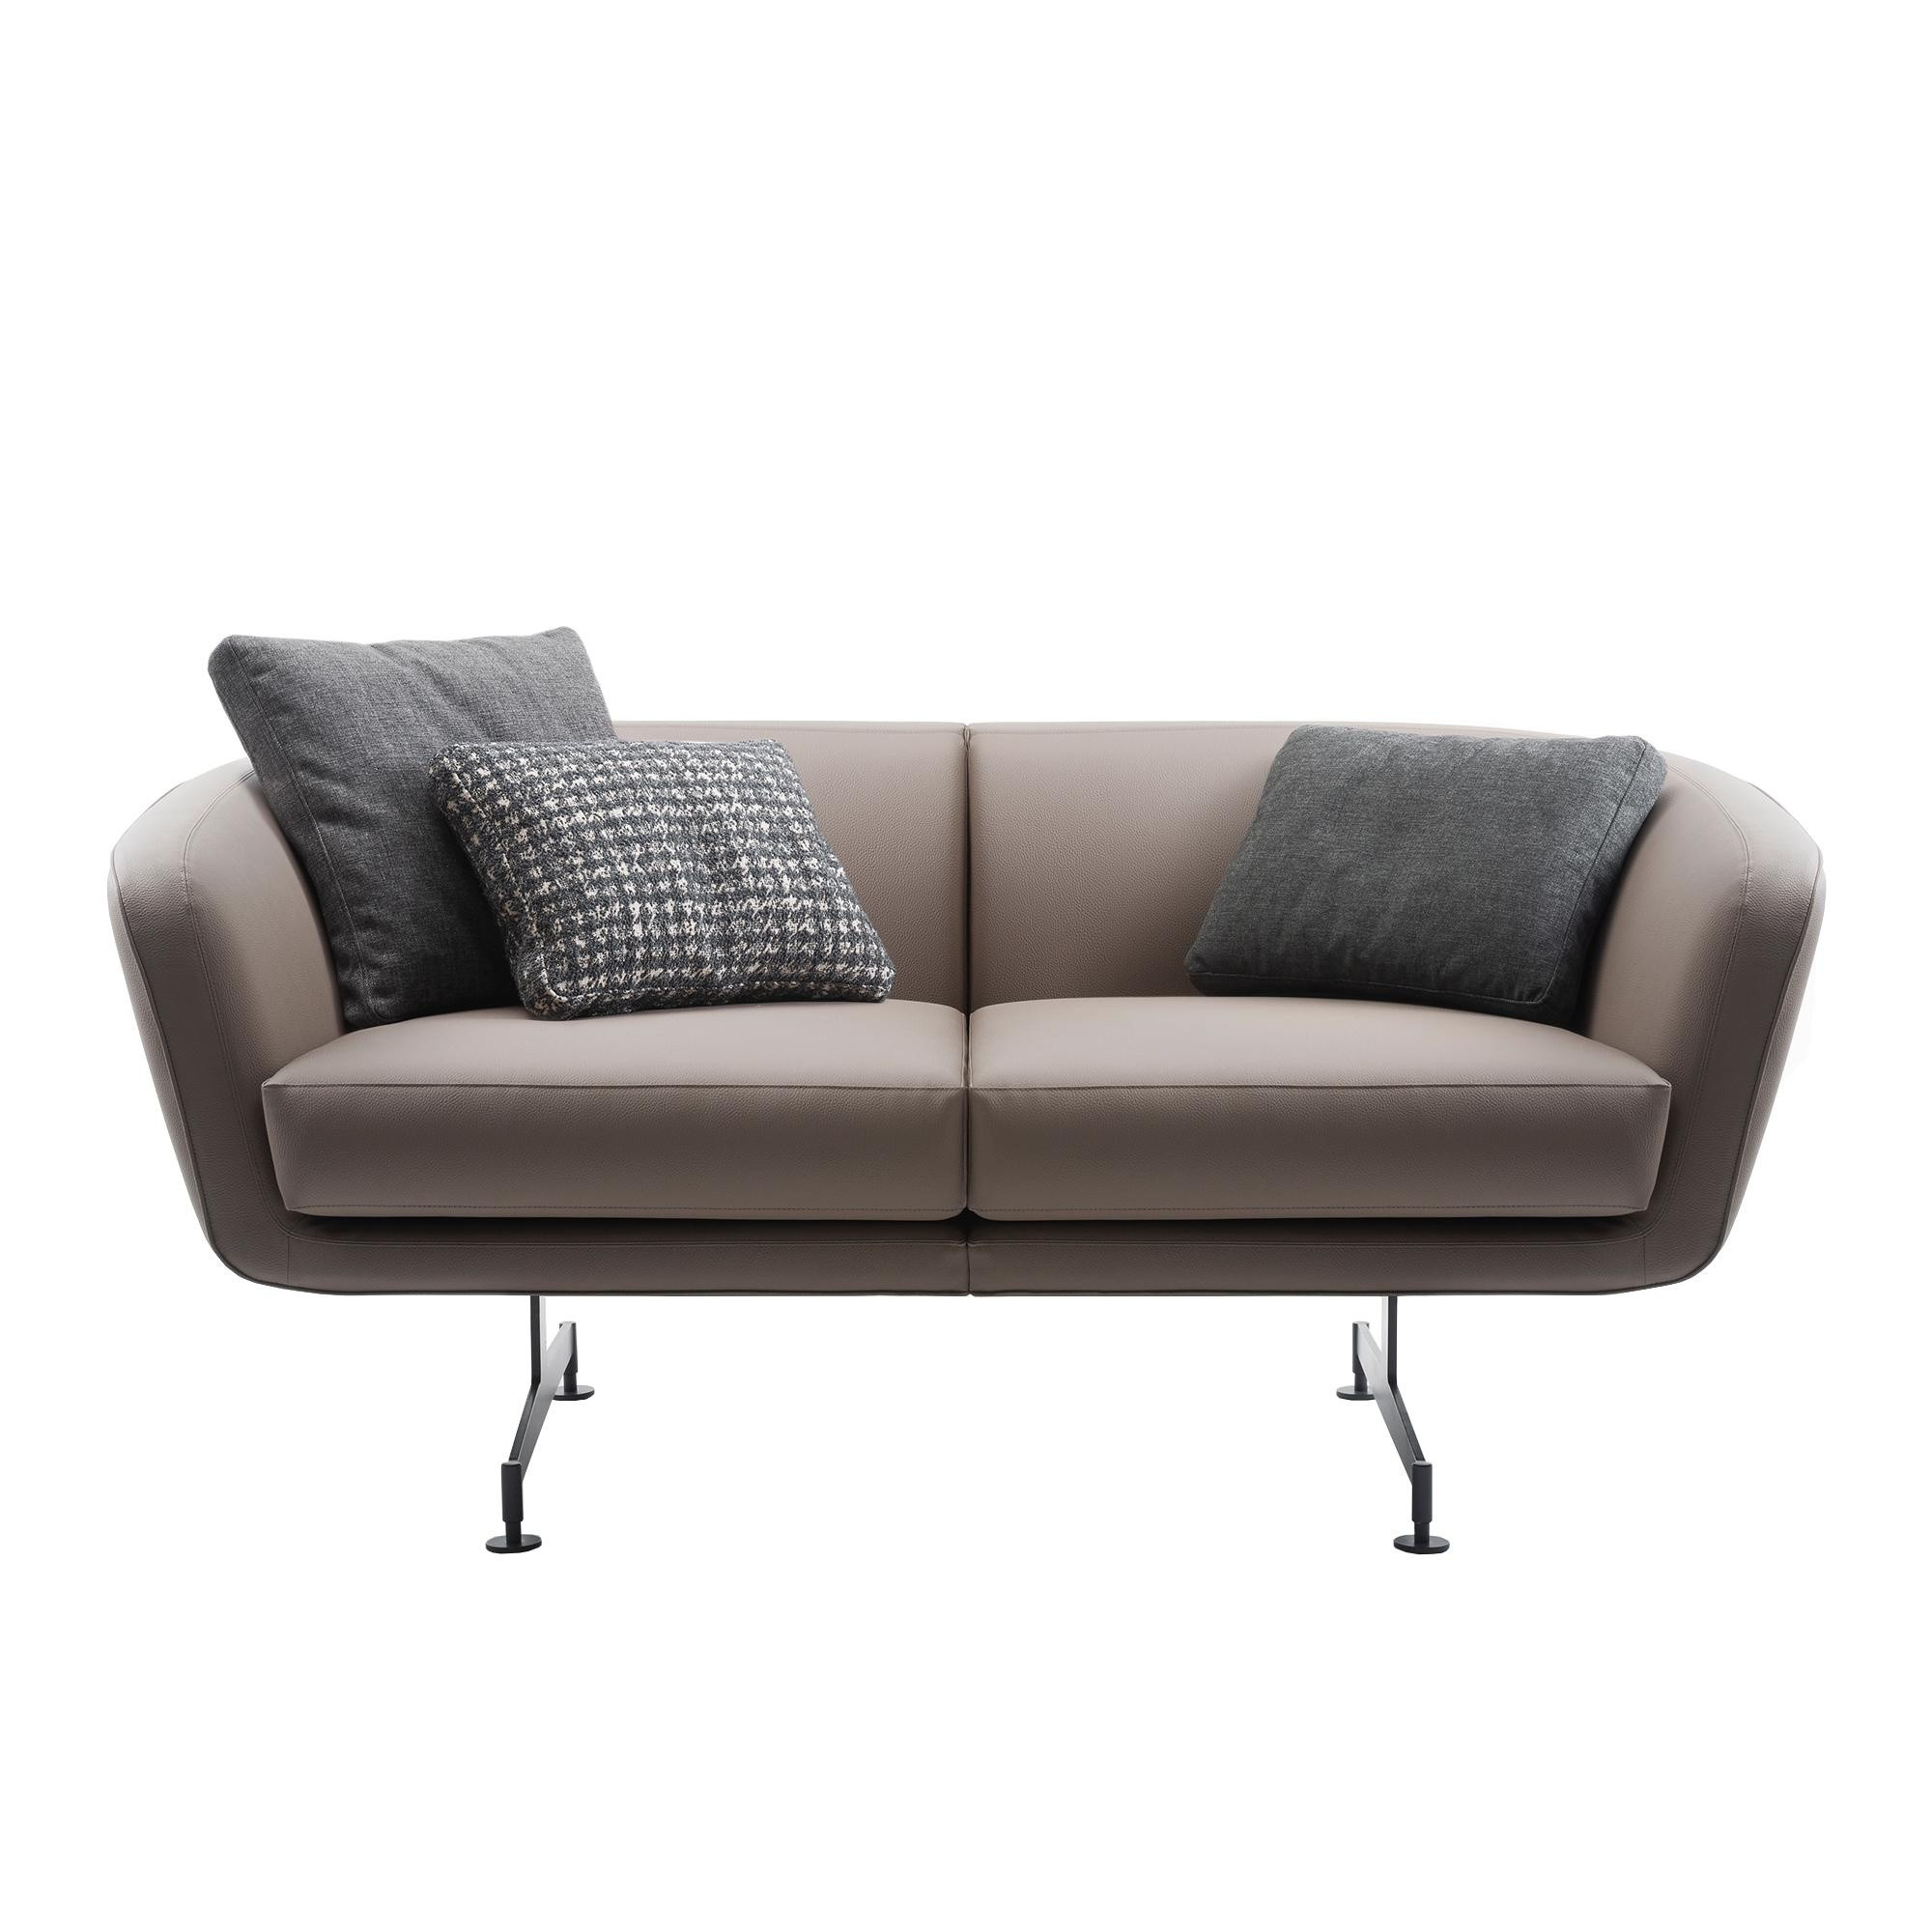 Kartell Sofa Betty 2 Seater Sofa Leather